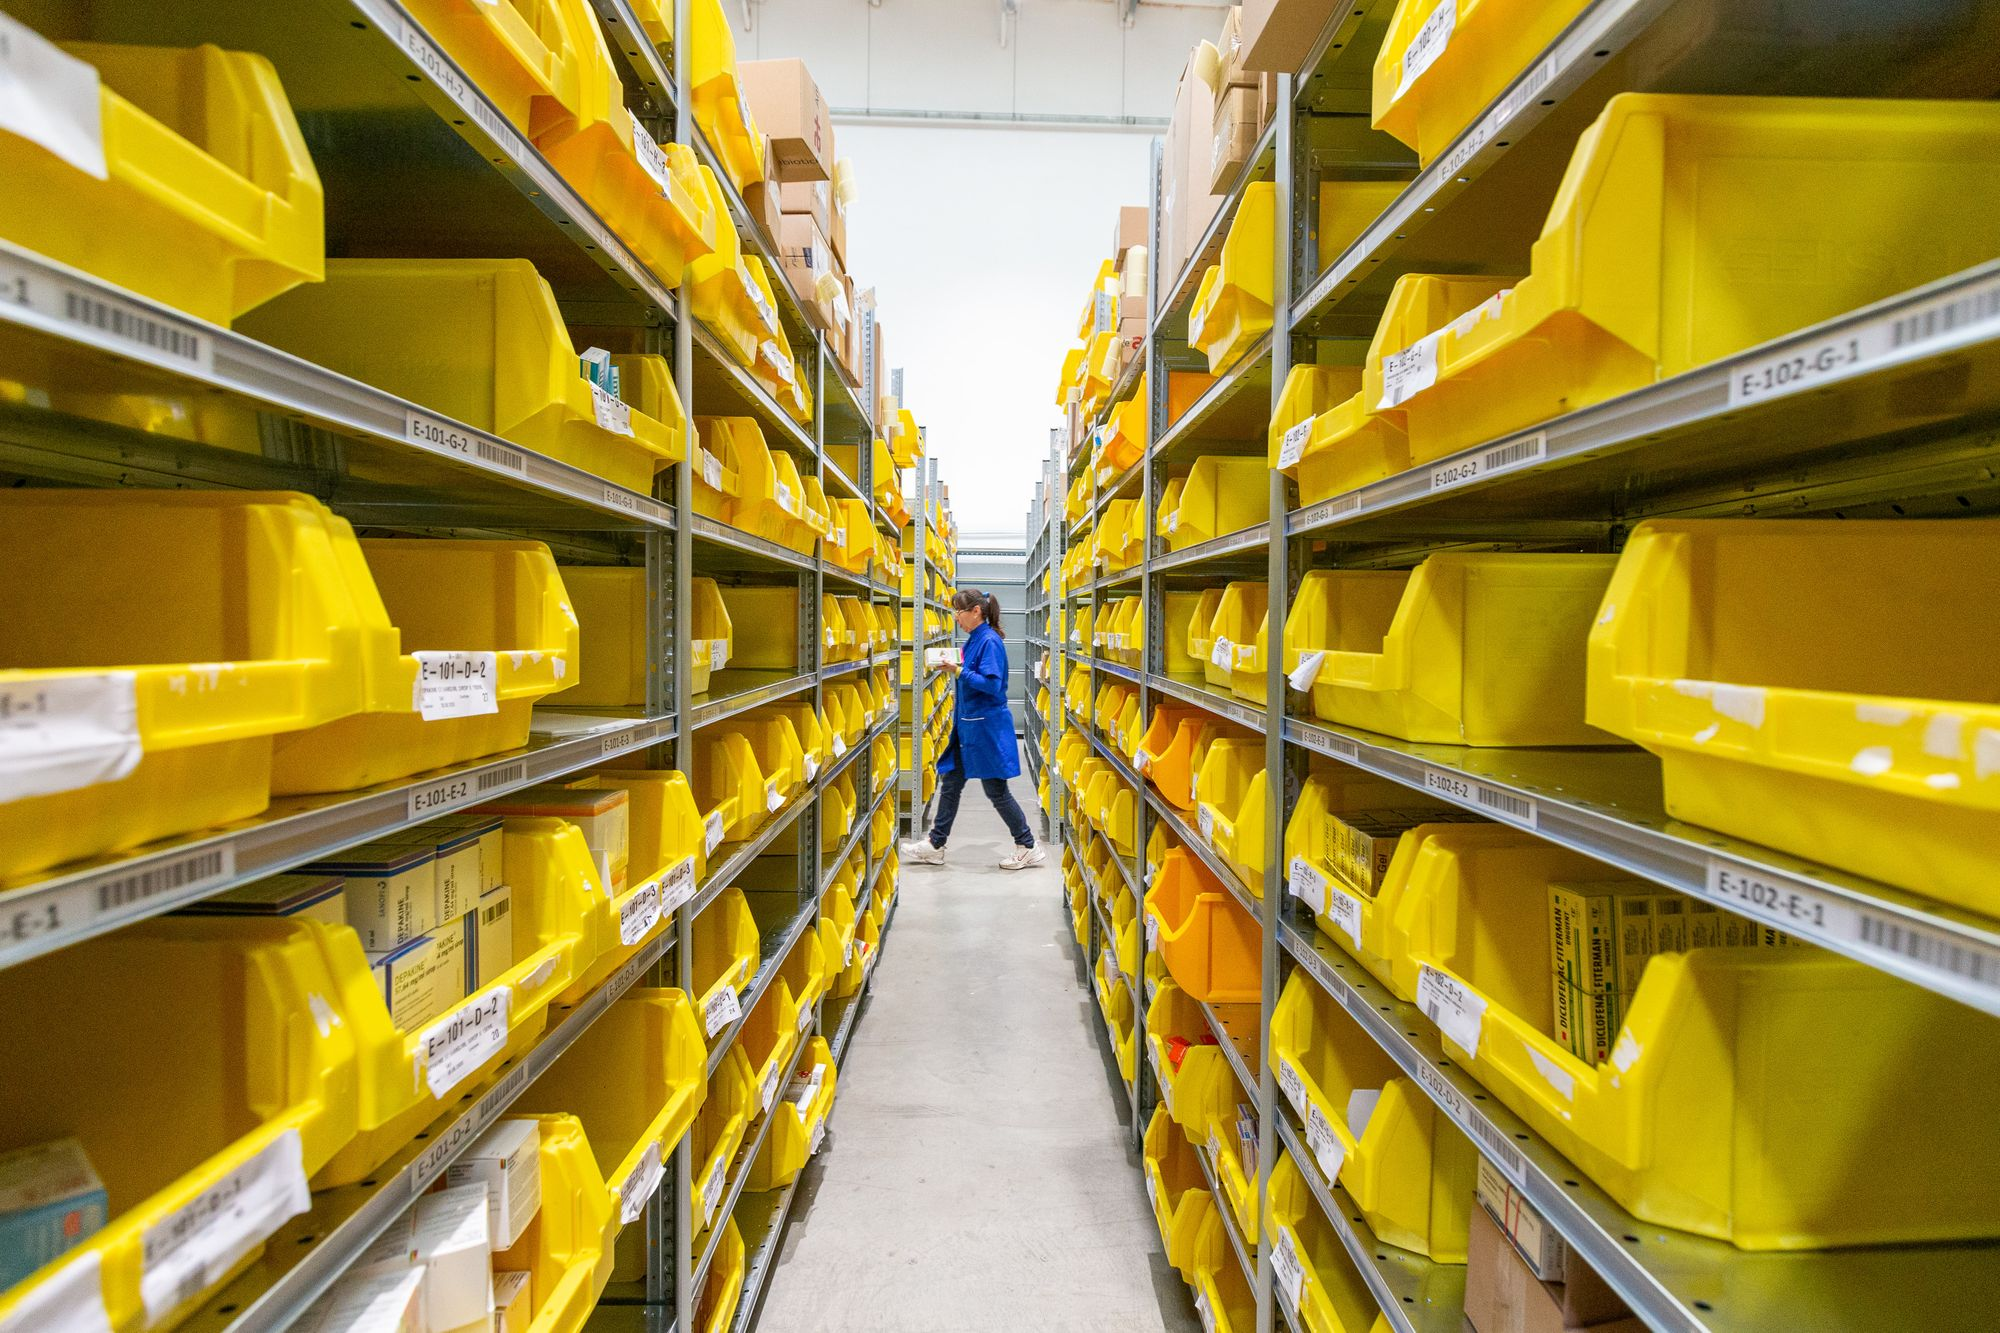 8 Tips to Organize Your Retail Stockroom to Increase Efficiency